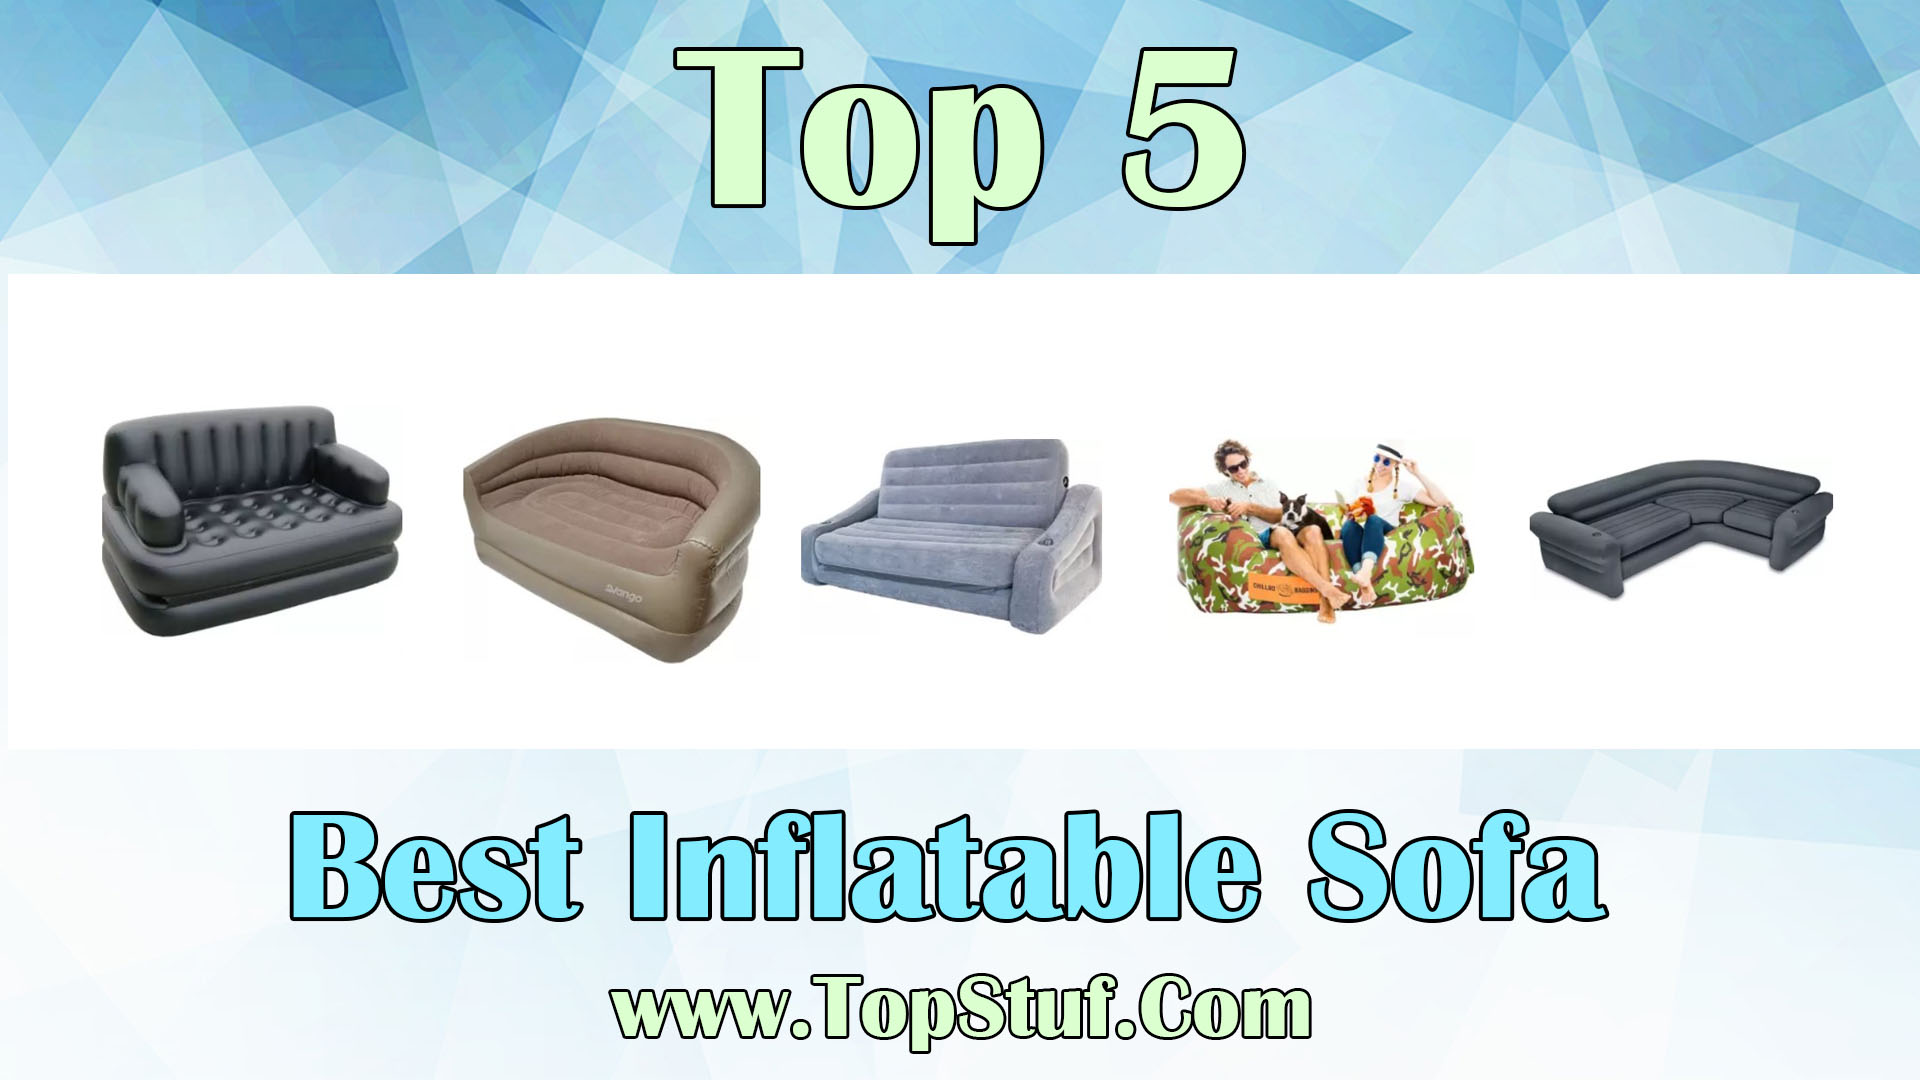 Best Inflatable Sofa